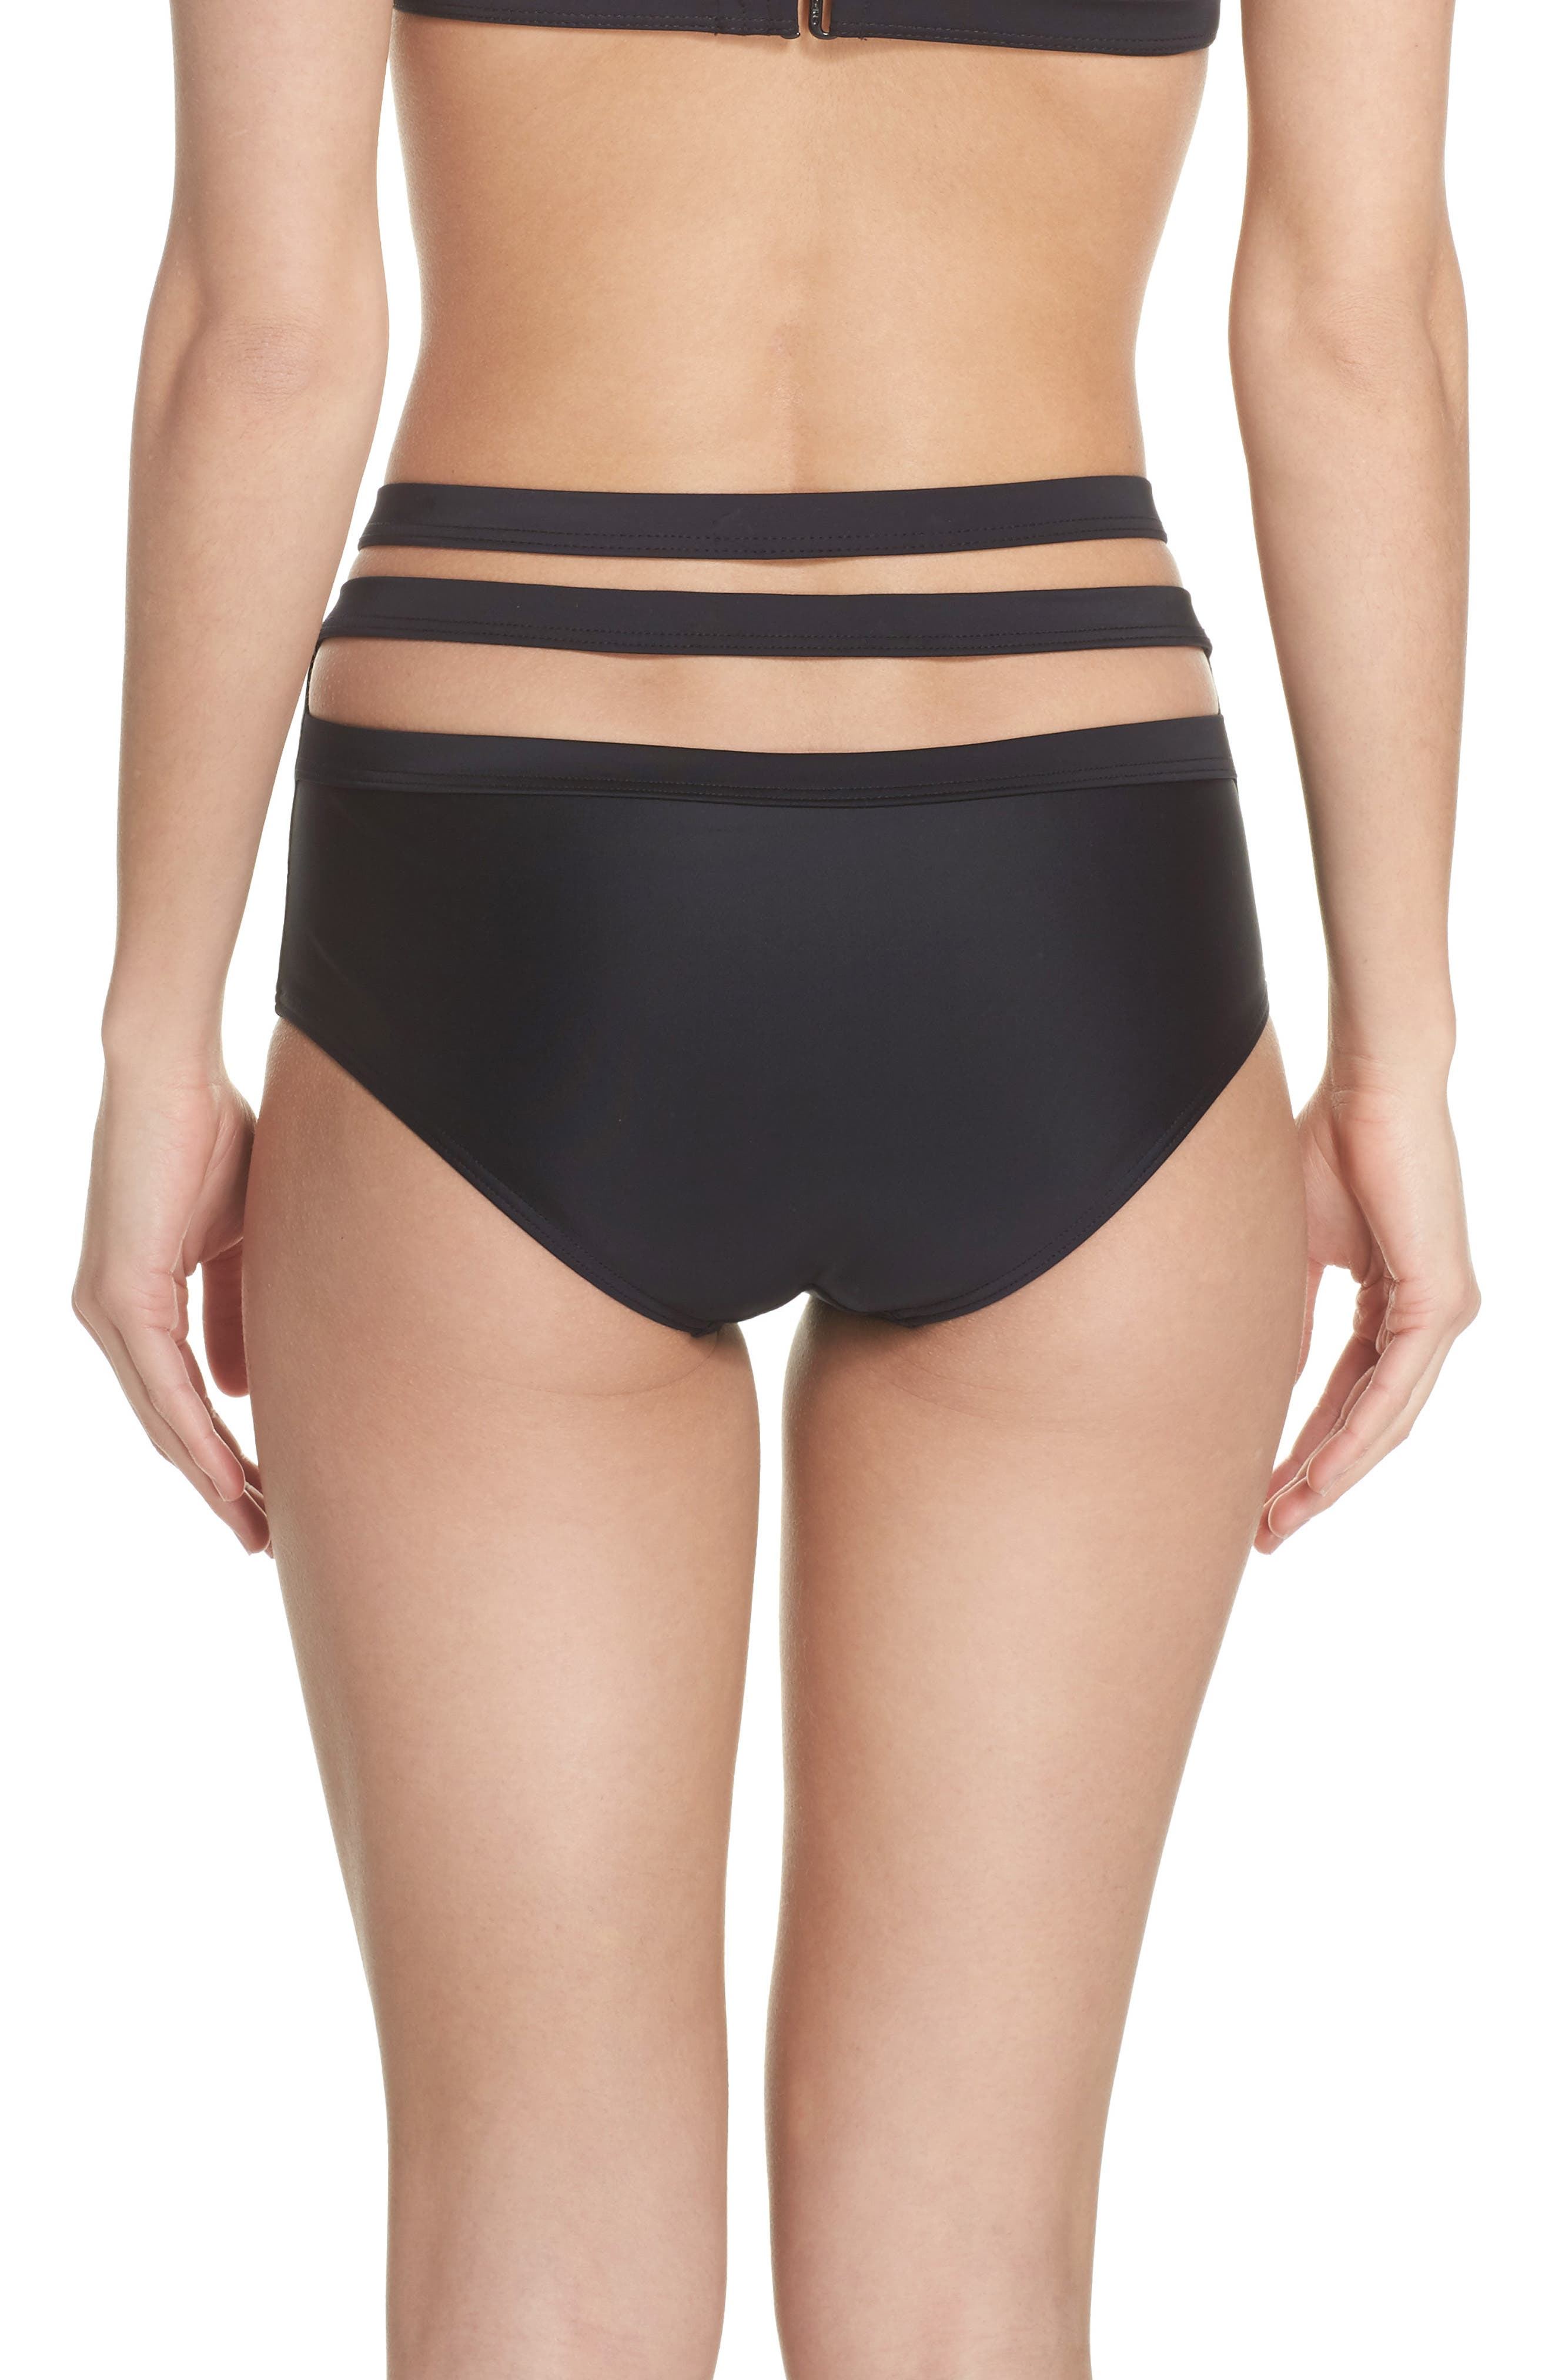 Bouloux II High Waist Bikini Bottoms,                             Alternate thumbnail 3, color,                             Black